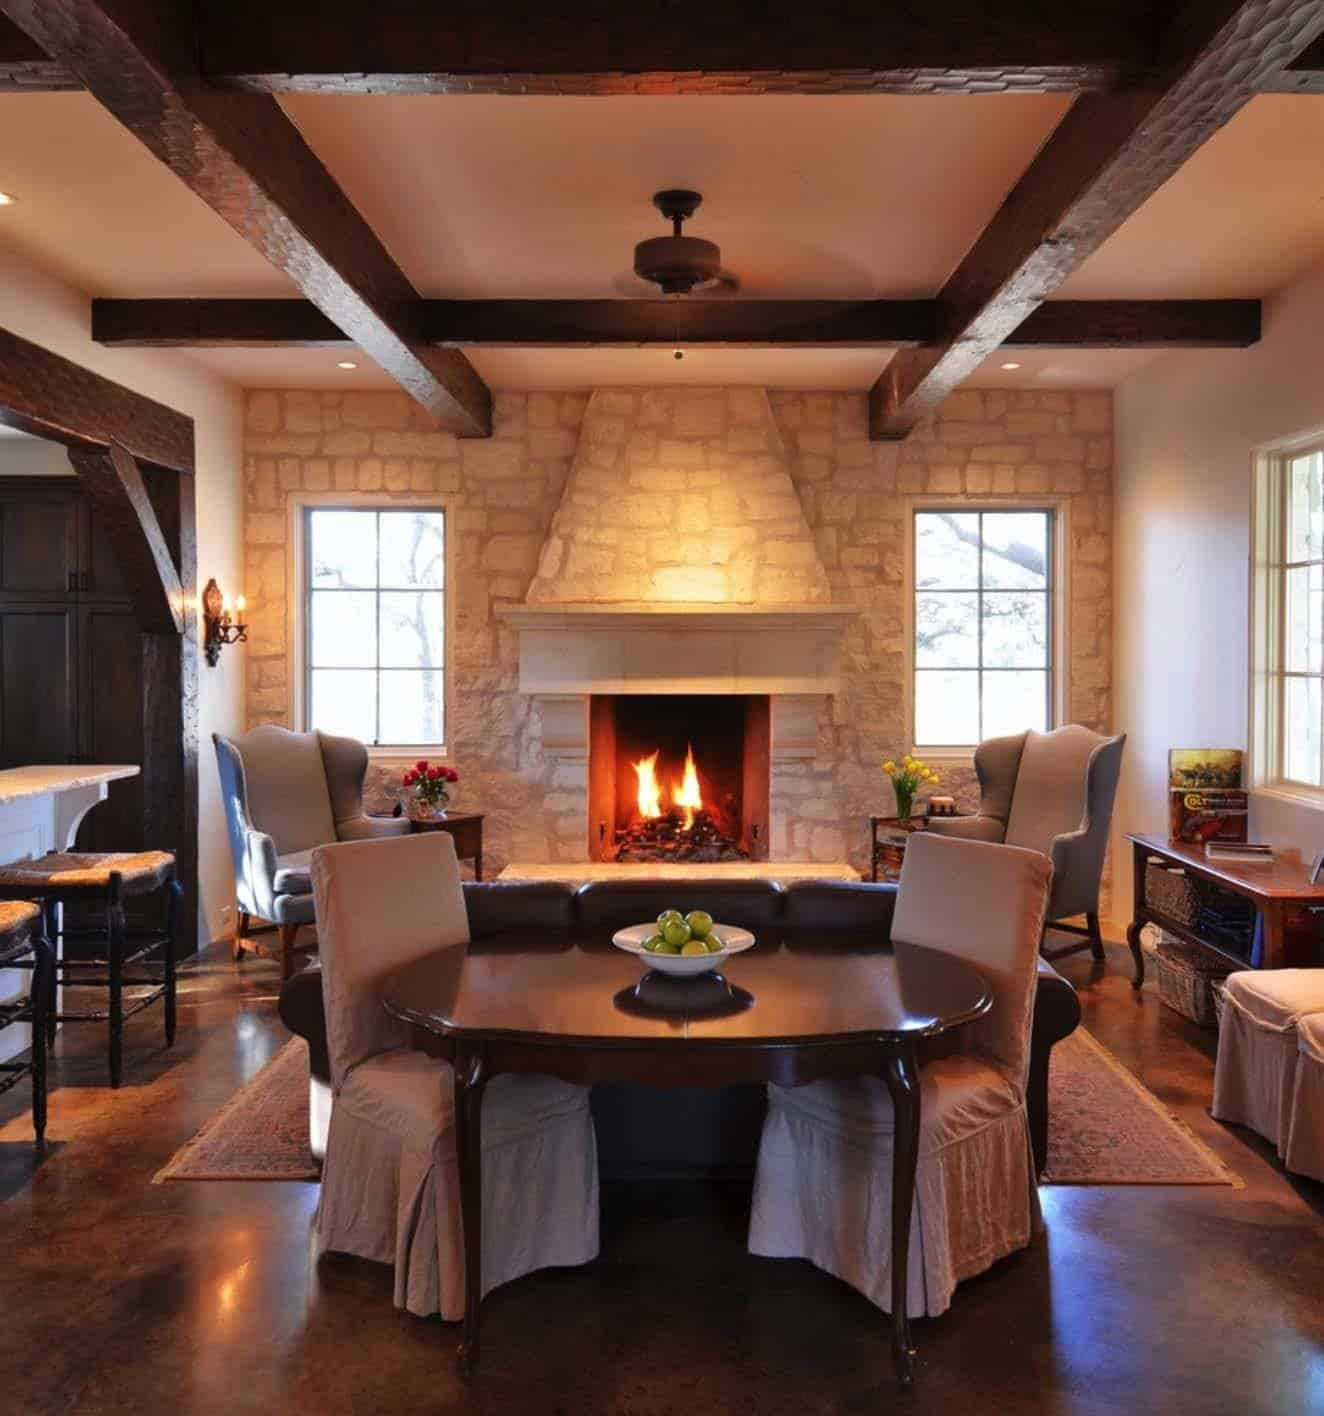 Cozy Fireplace Ideas-33-1 Kindesign